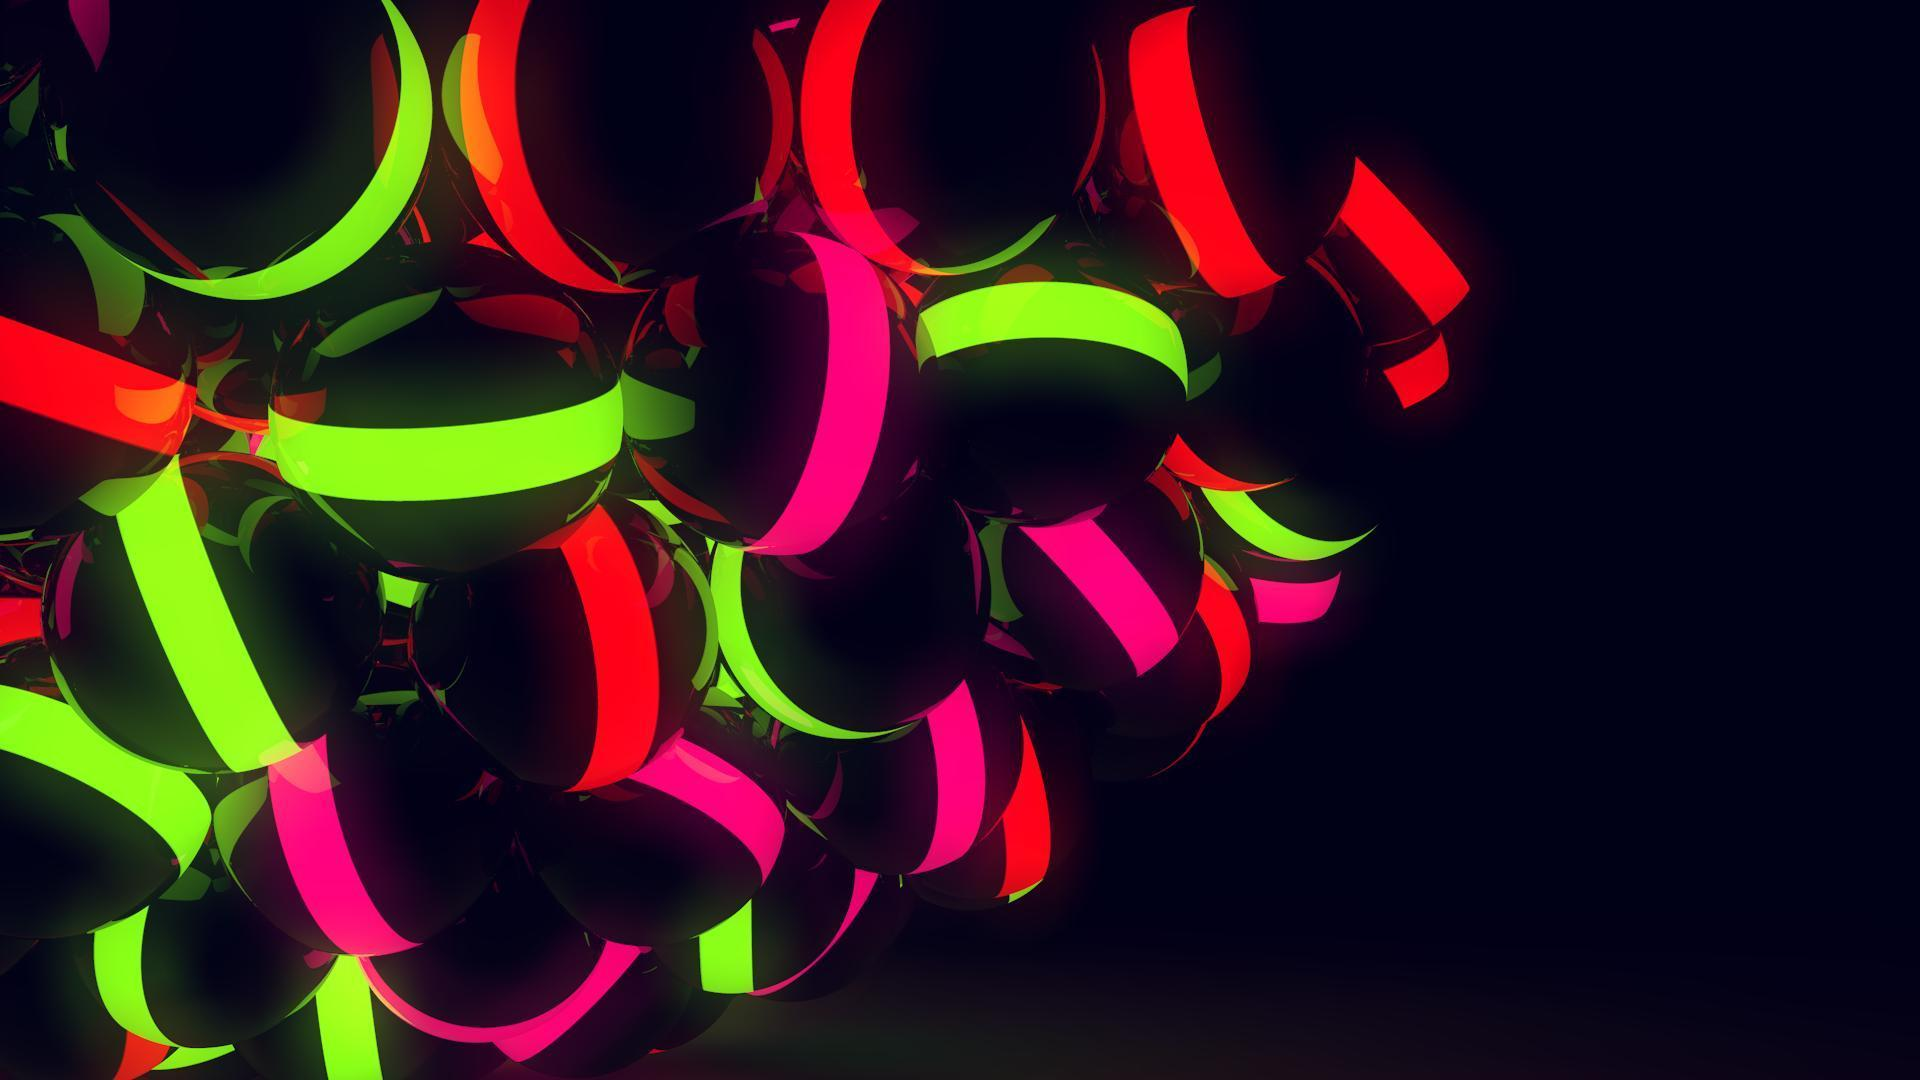 cinema 4d wallpapers 1366x768 - photo #4